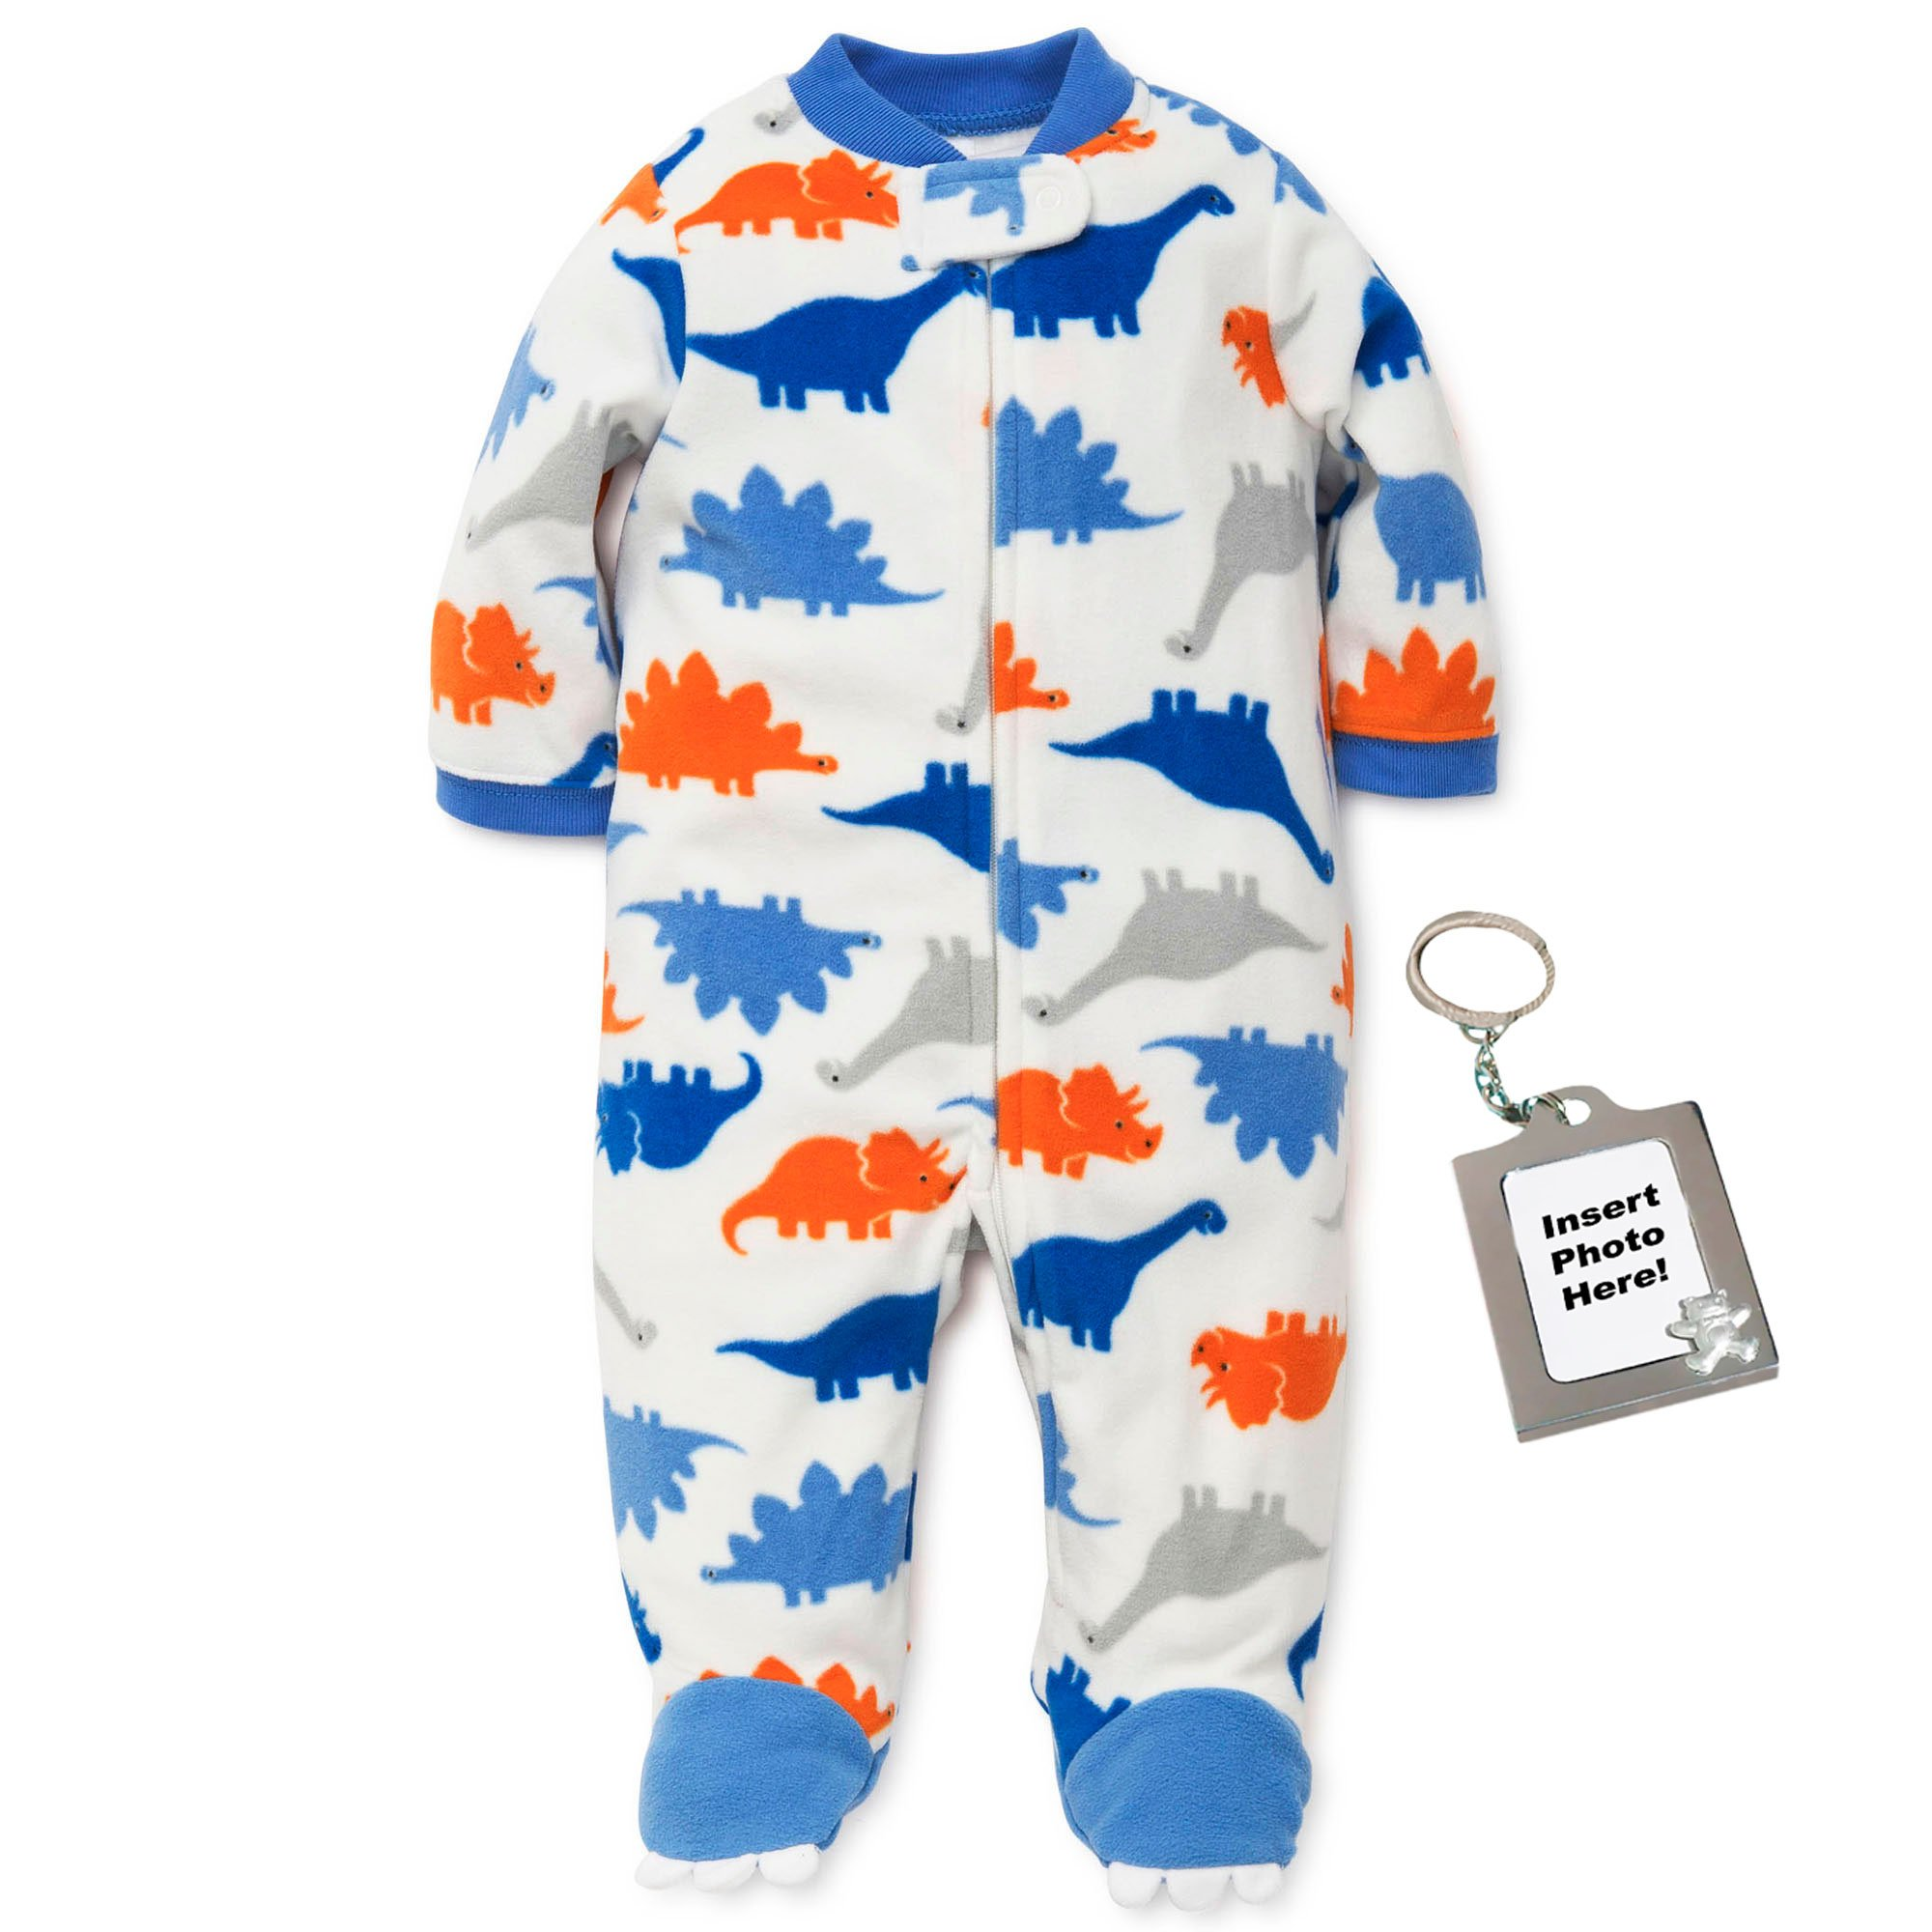 b4b734f293 Amazon.com  Little Me Dinosaur Footed Infant Blanket Sleeper Baby Pajamas  Off White 18 Month  Baby